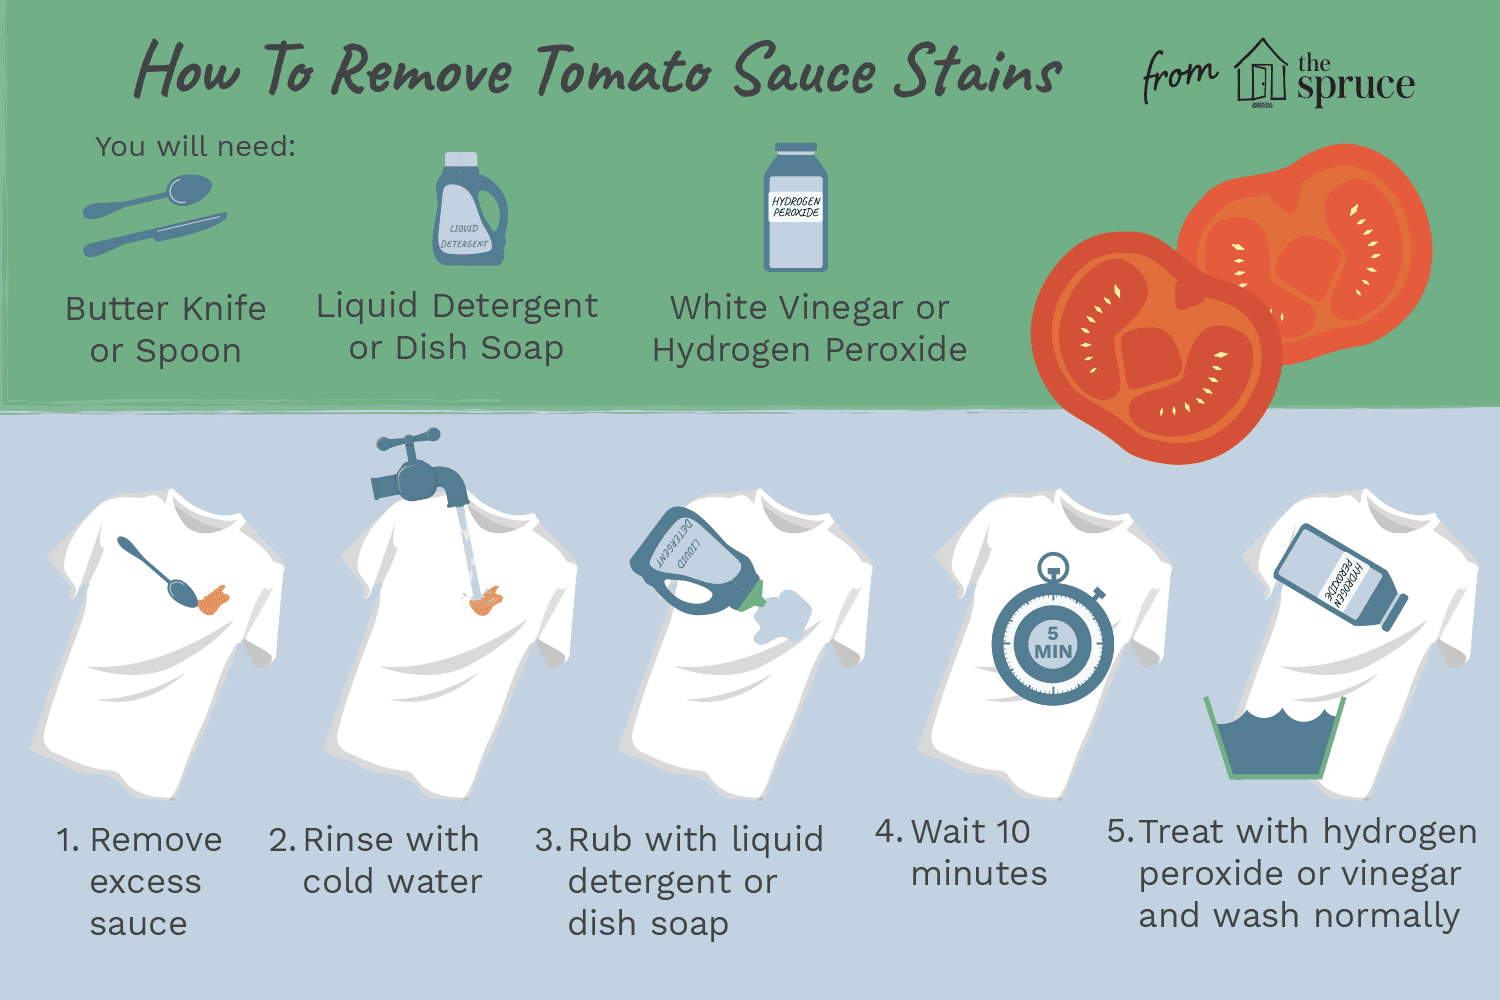 Removing Tomato Sauce Stains From Clothing Cleaning Hacks House Cleaning Tips Deep Cleaning Tips